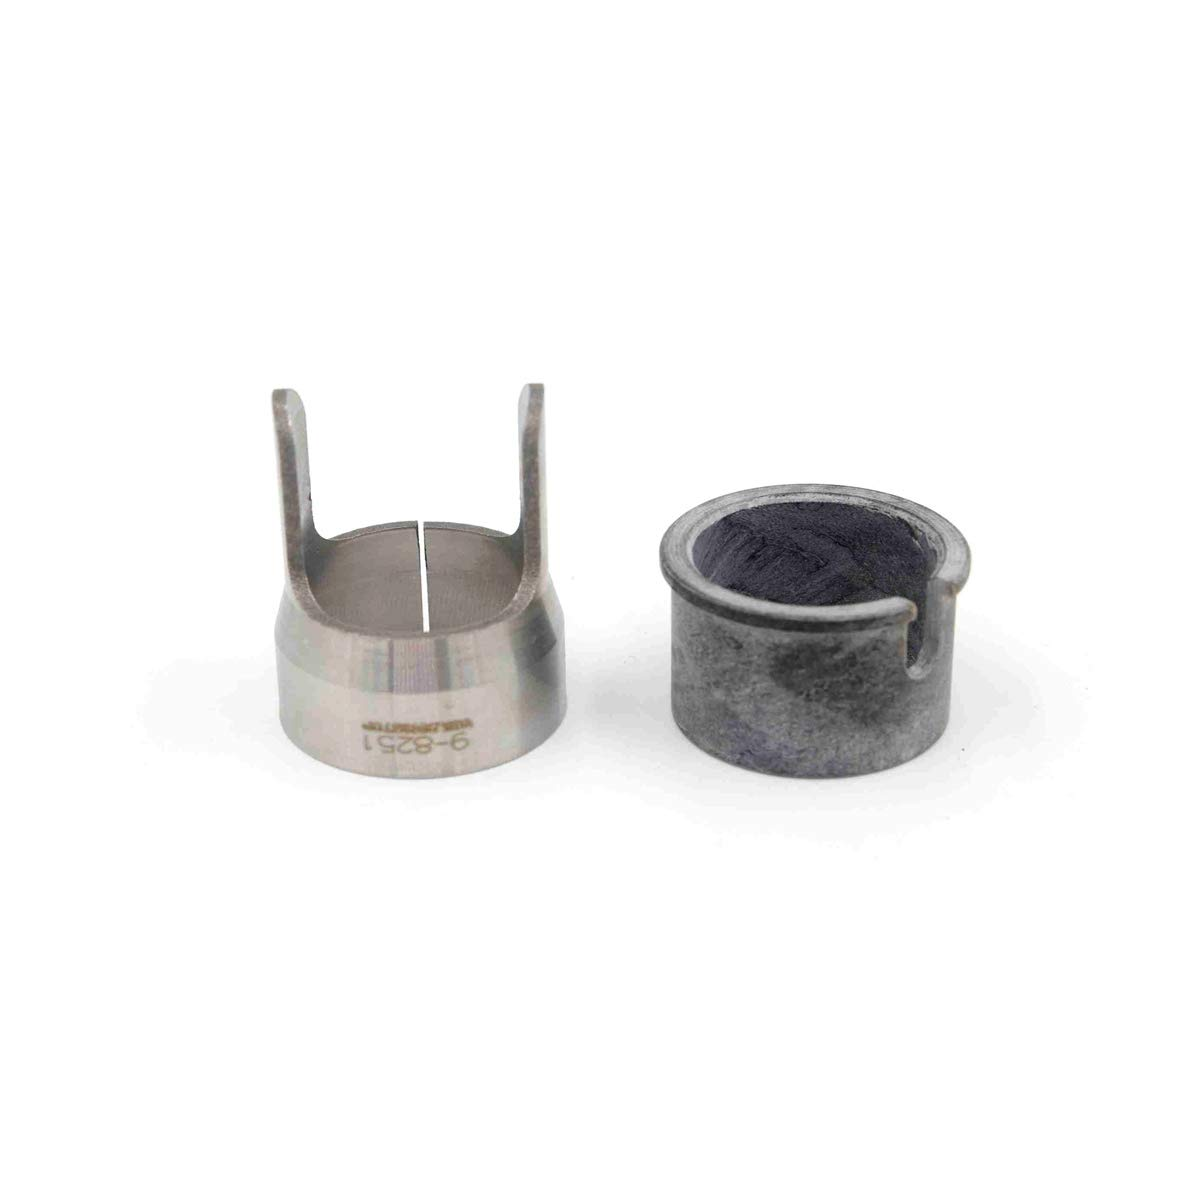 7-2915 Thermal Dynamics Bushing for SL40 Torch